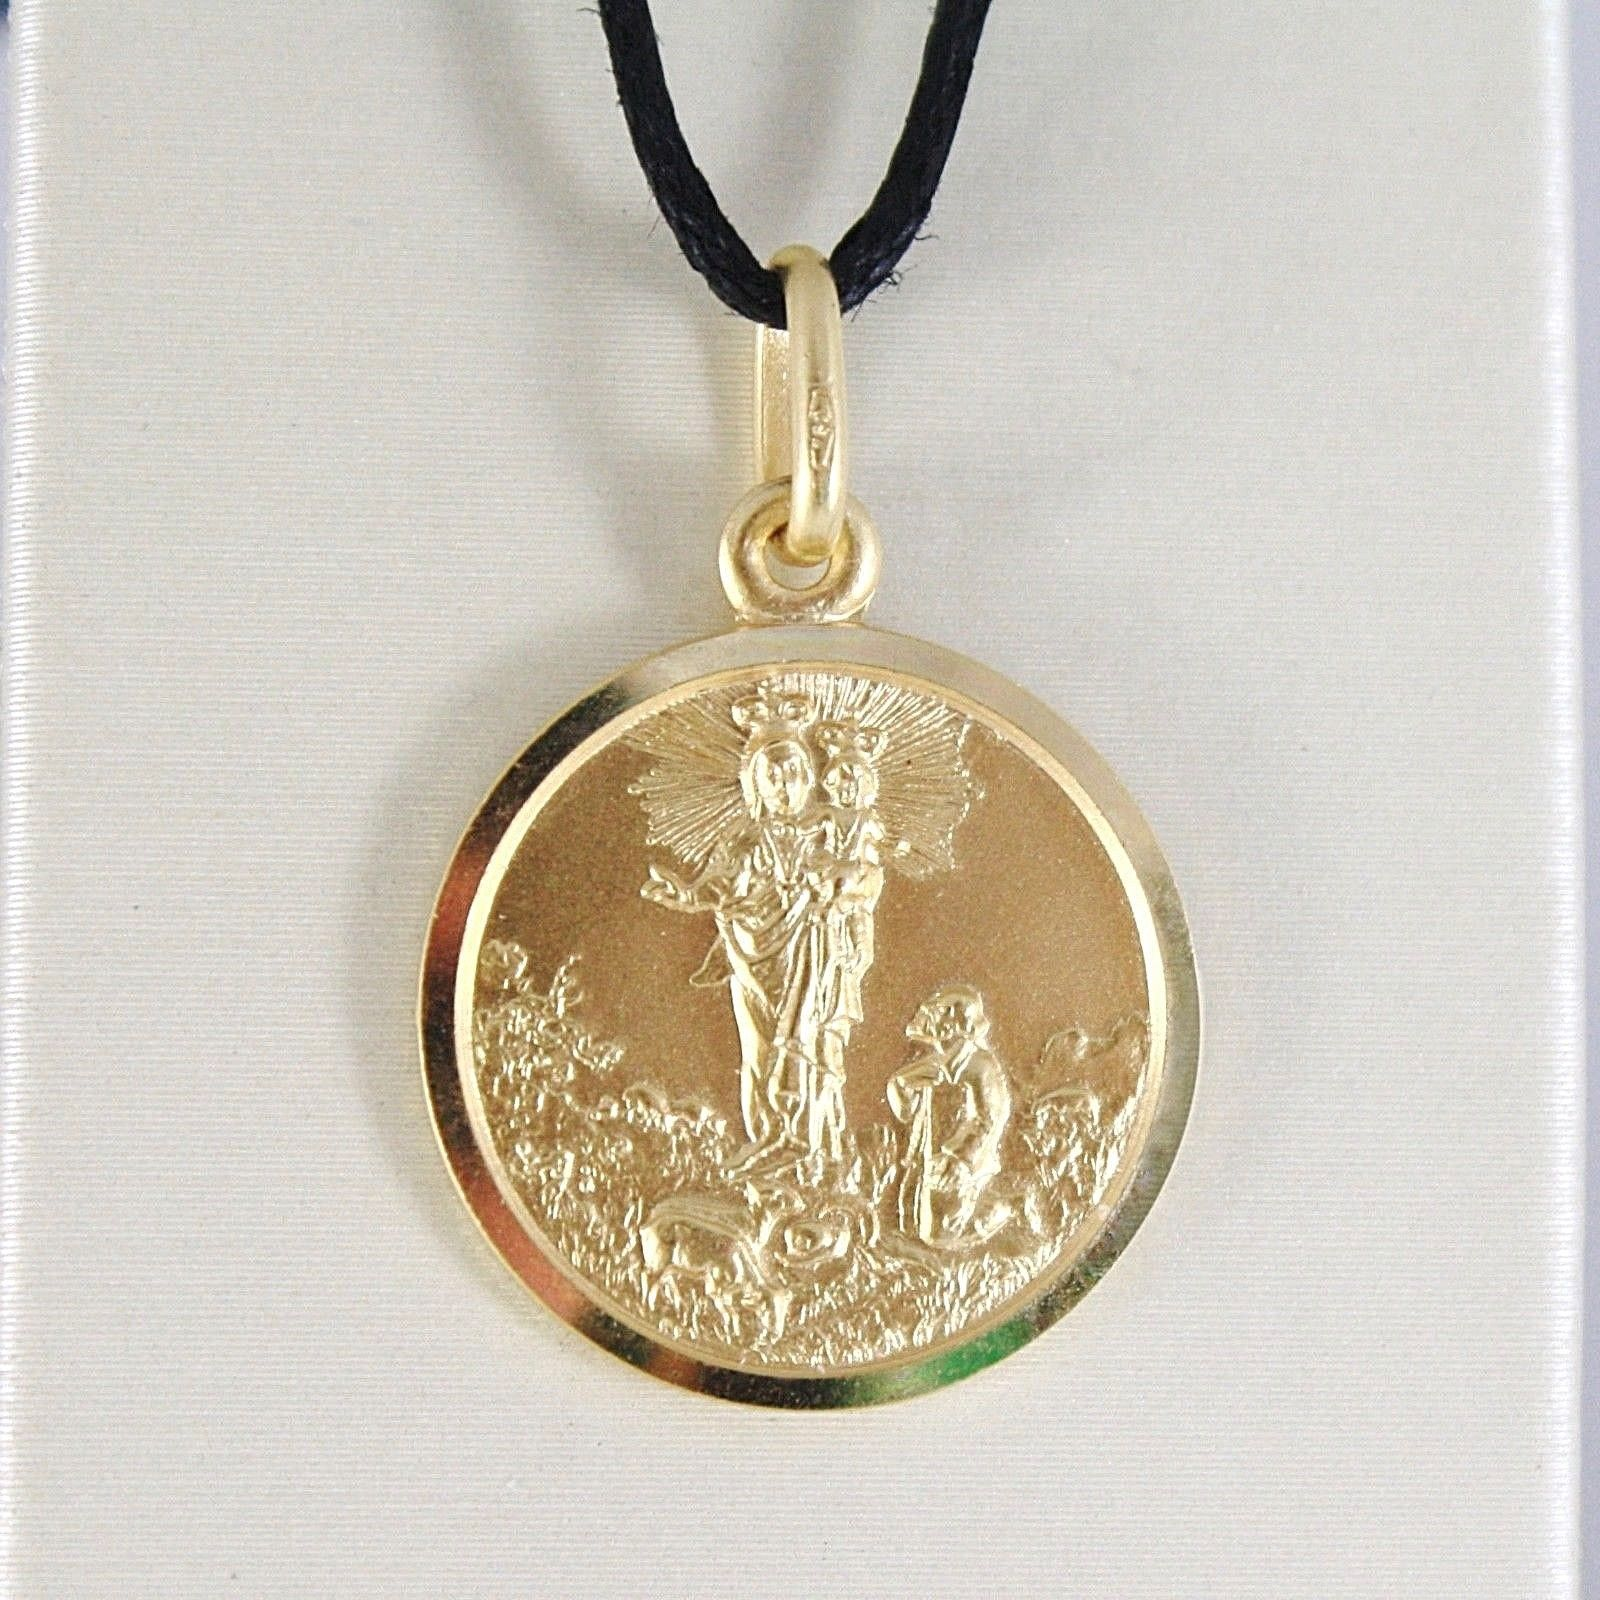 SOLID 18K YELLOW GOLD OUR MARY LADY OF THE GUARD 13 MM ROUND MEDAL MADE IN ITALY